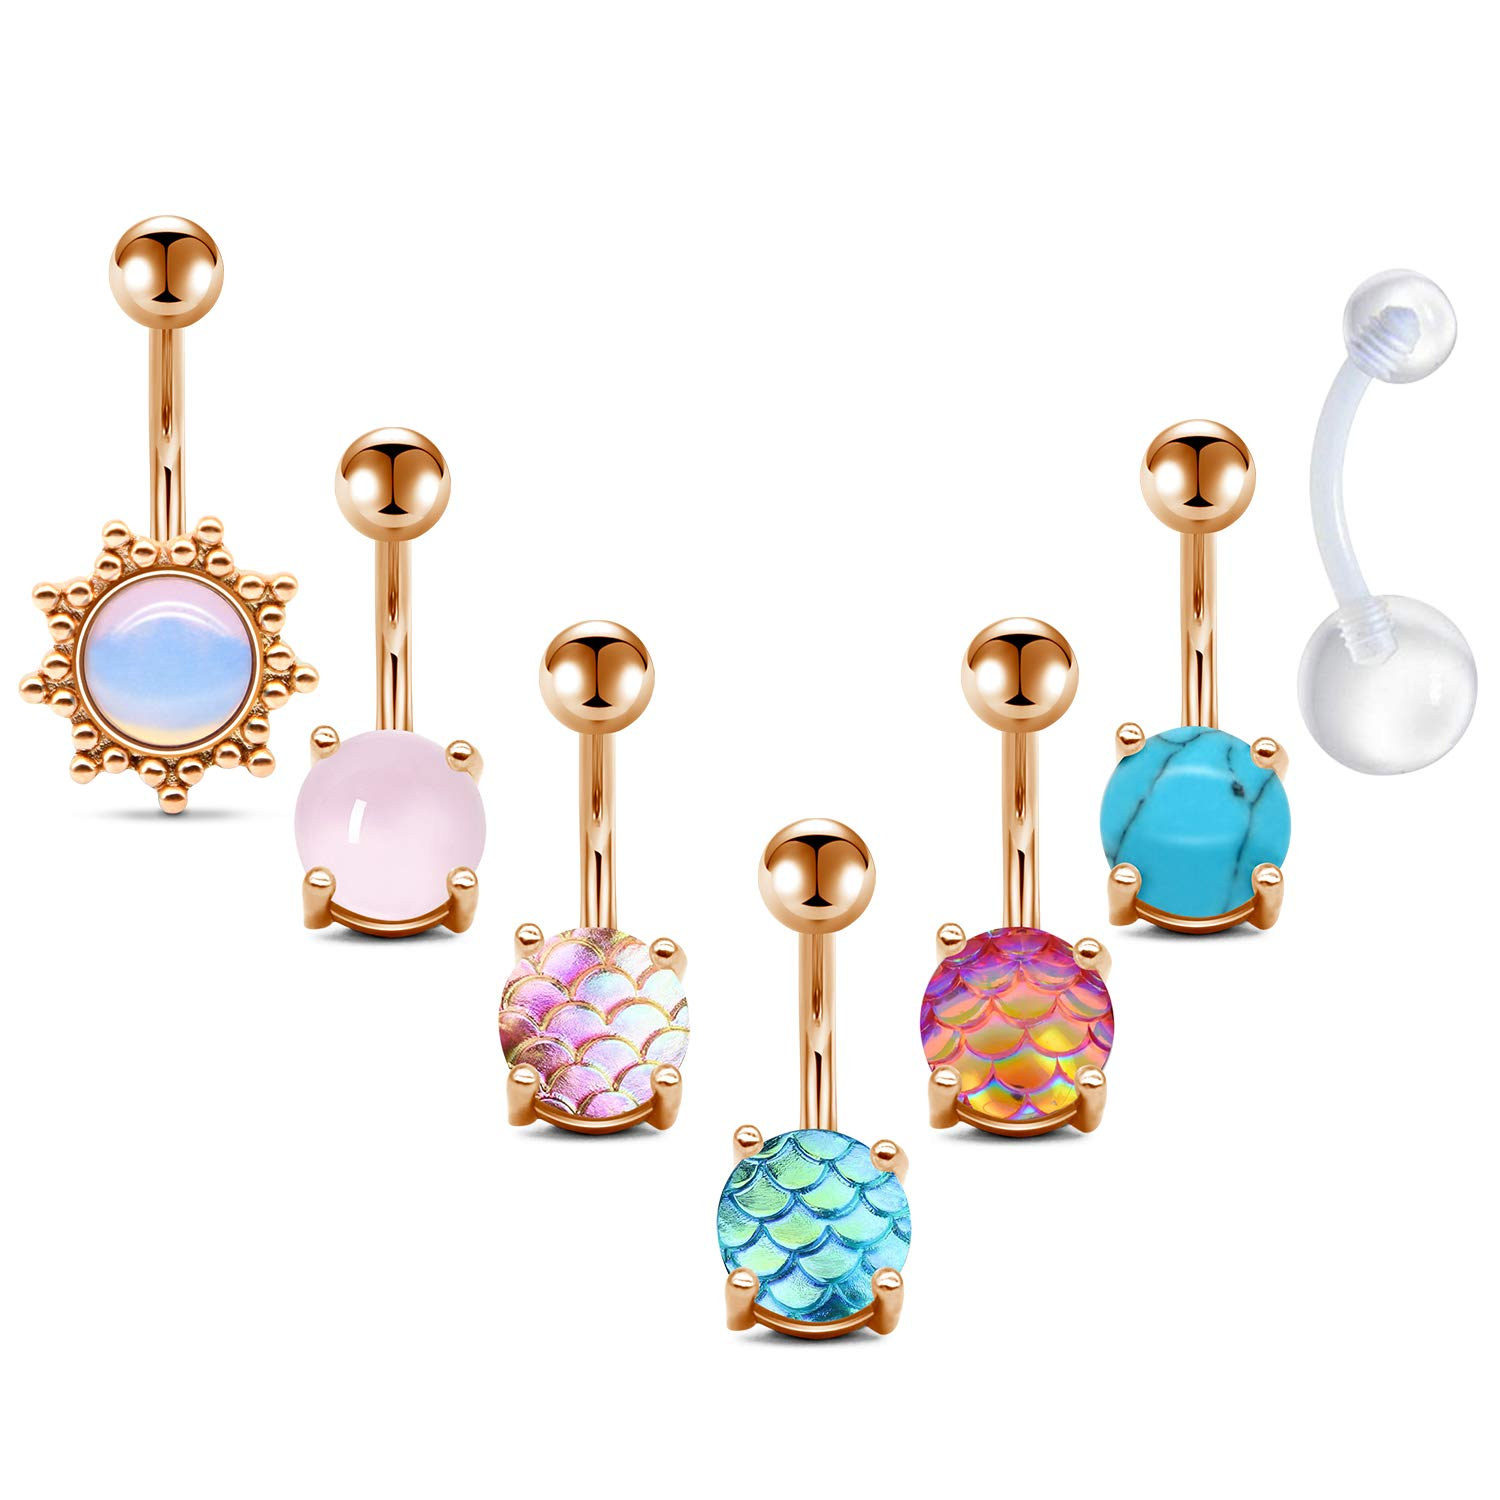 FECTAS Belly Button Rings Surgical Steel for Women Girls Navel Belly Rings Piercing Ring Jewelry Pack Kit 14G by FECTAS